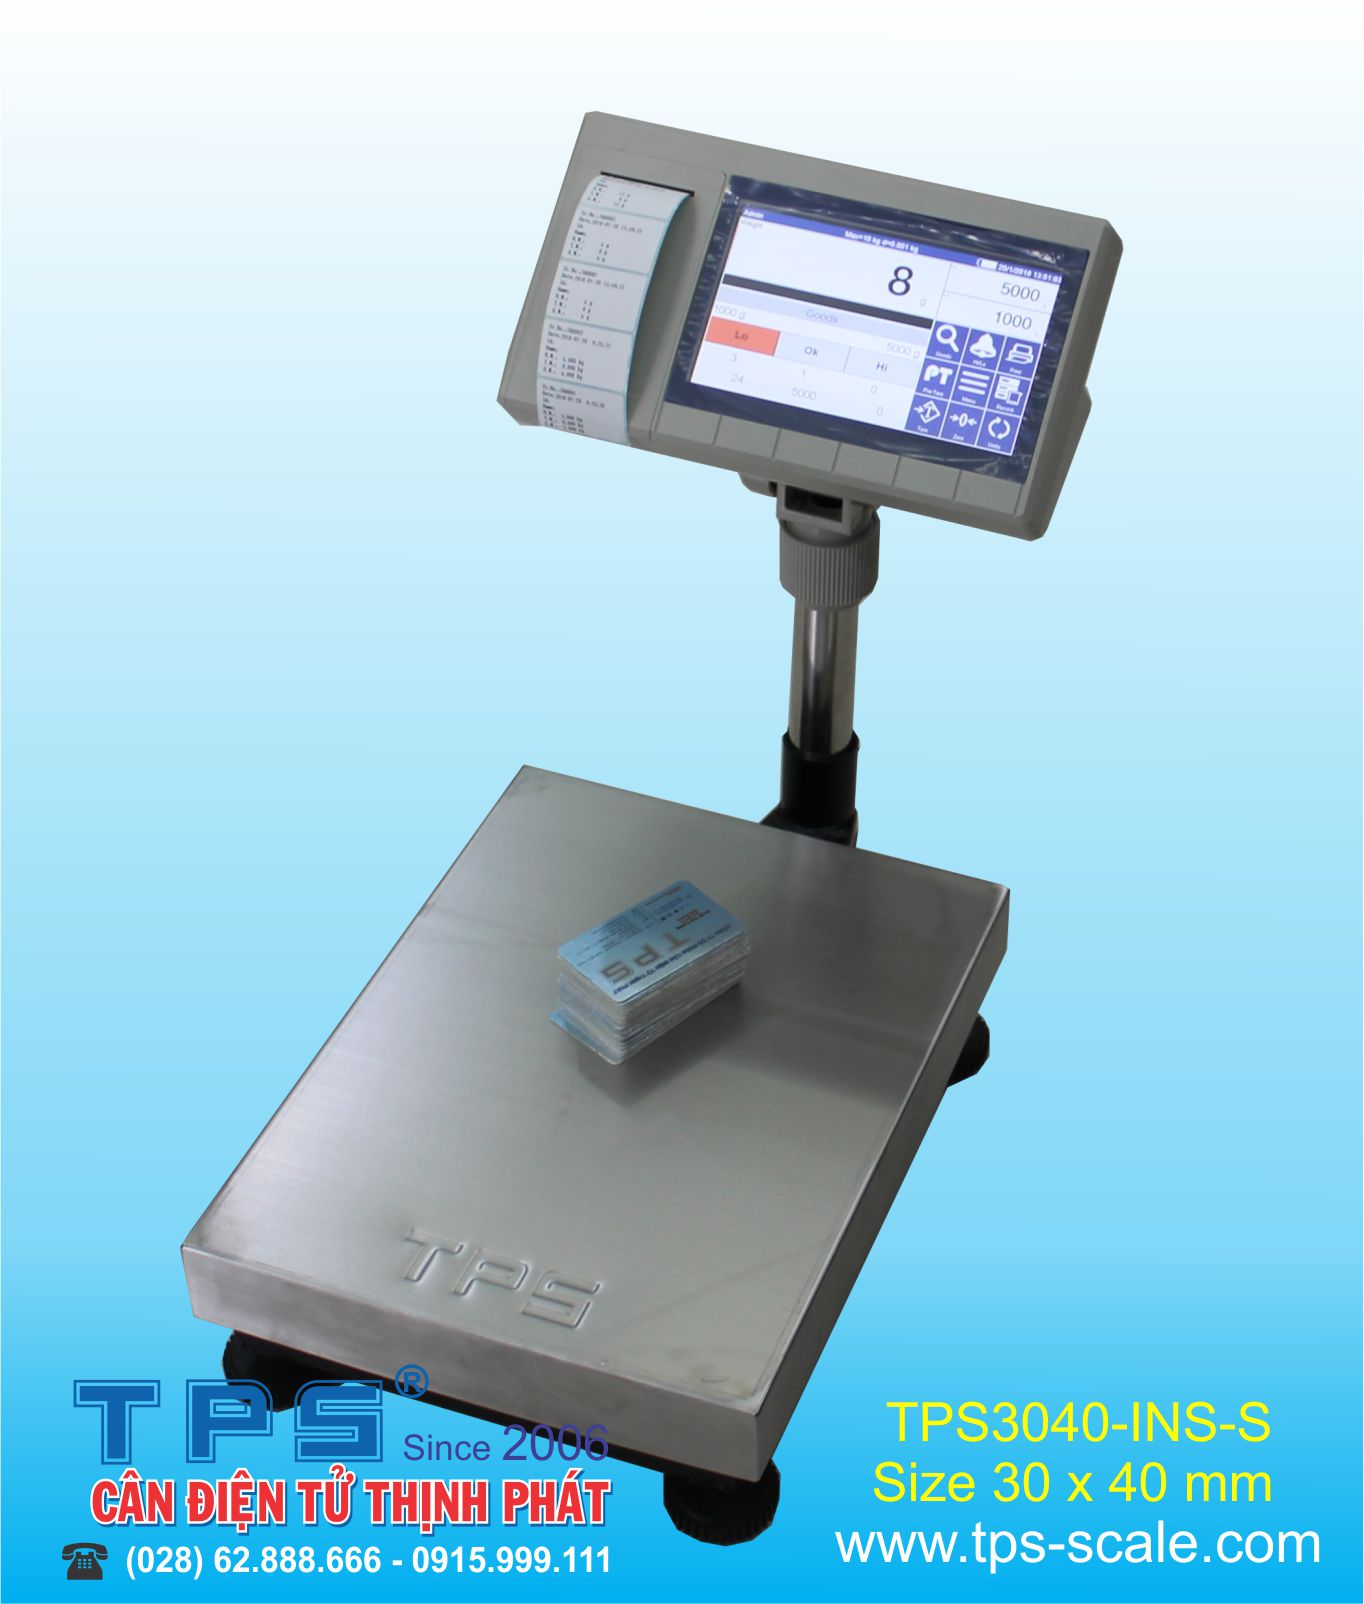 TPS3040-IND-S